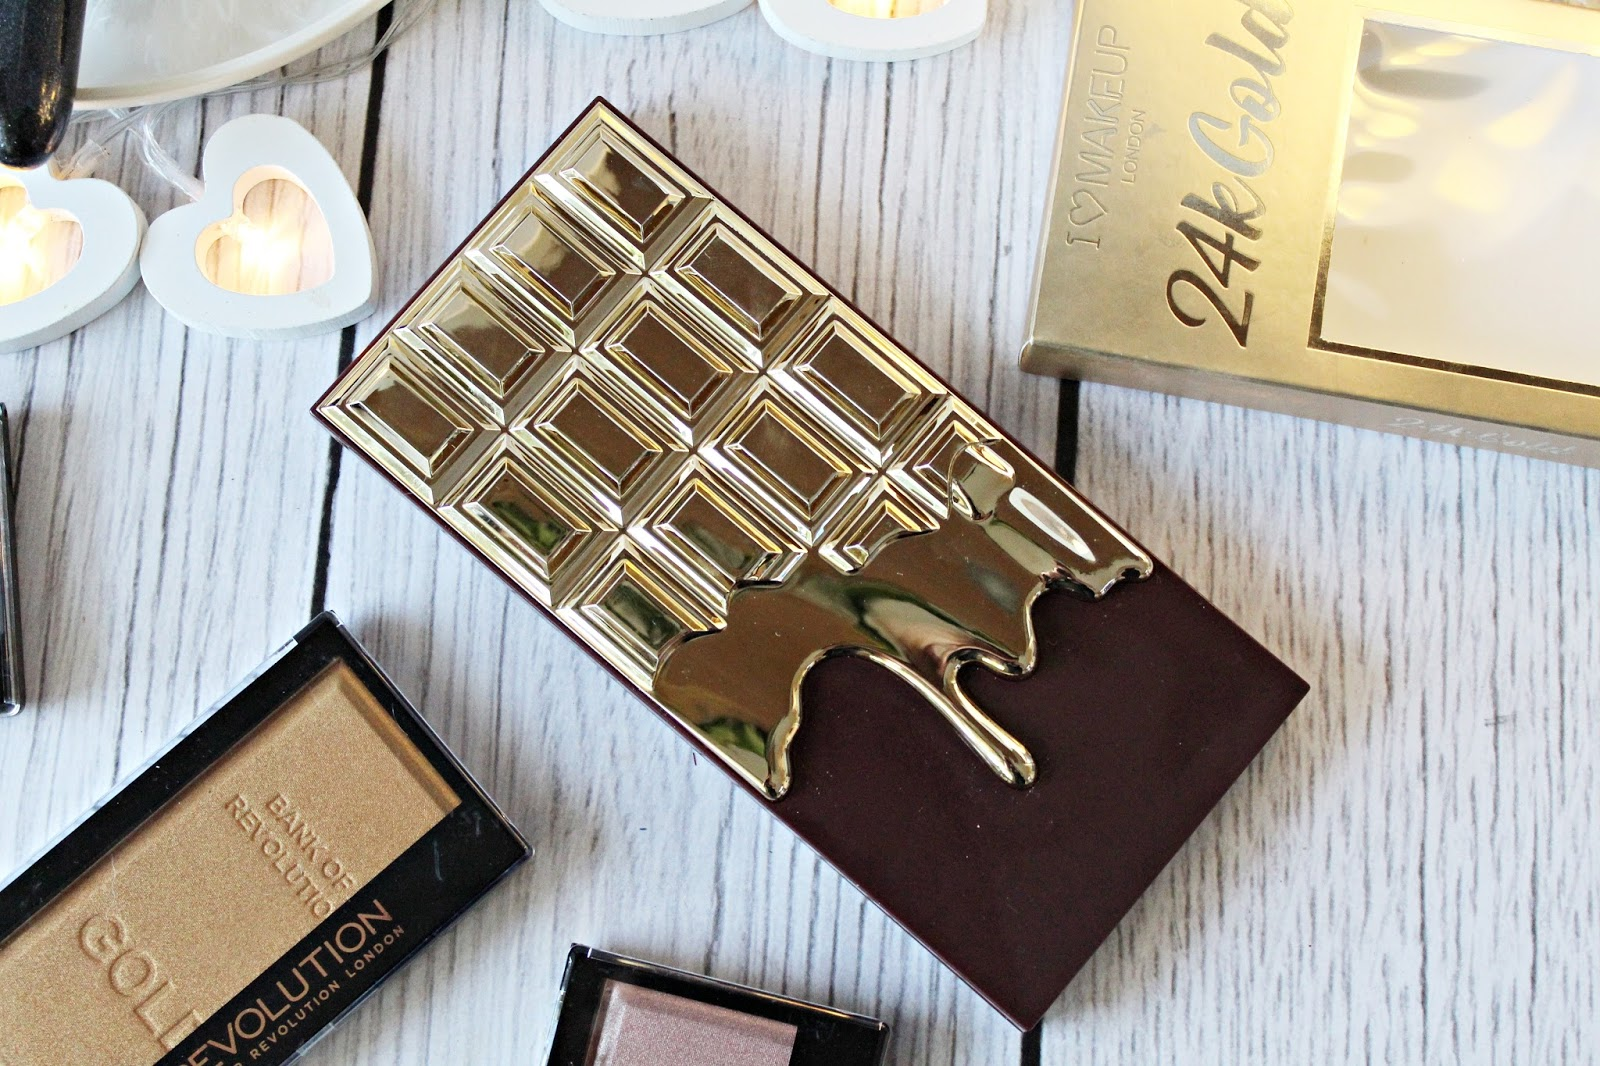 NOWOŚĆ! I HEART CHOCOLATE - 24K GOLD - Paleta cieni - Makeup Revolution